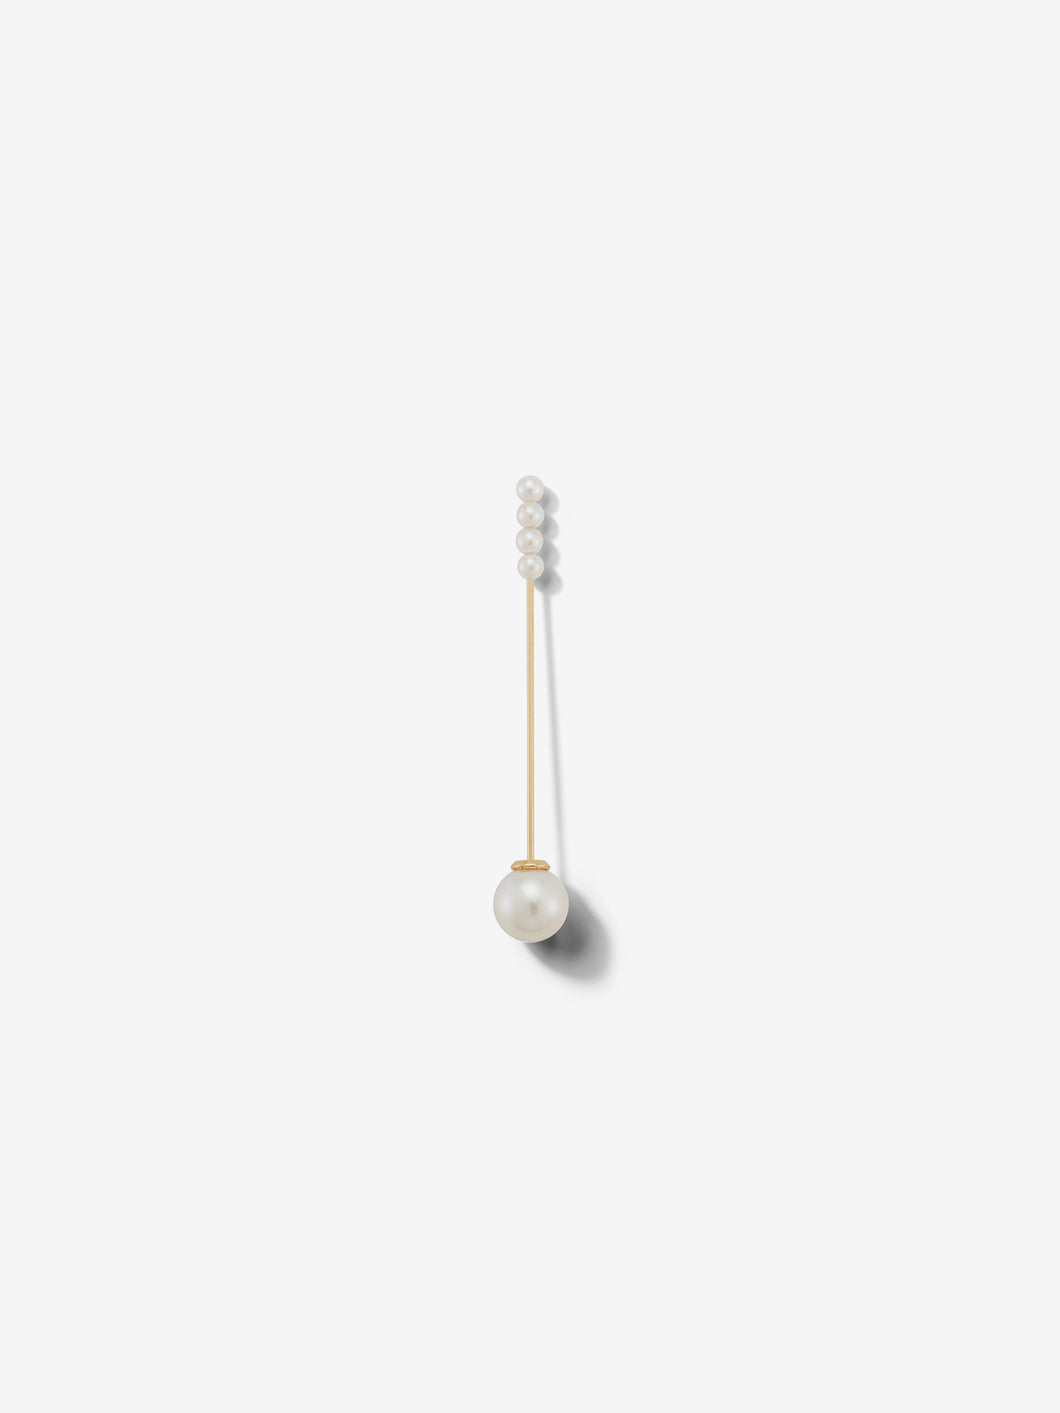 Sea of Beauty Collection.  Single Minimalist Kanzashi Pearl Earring SBE269-SINGLE